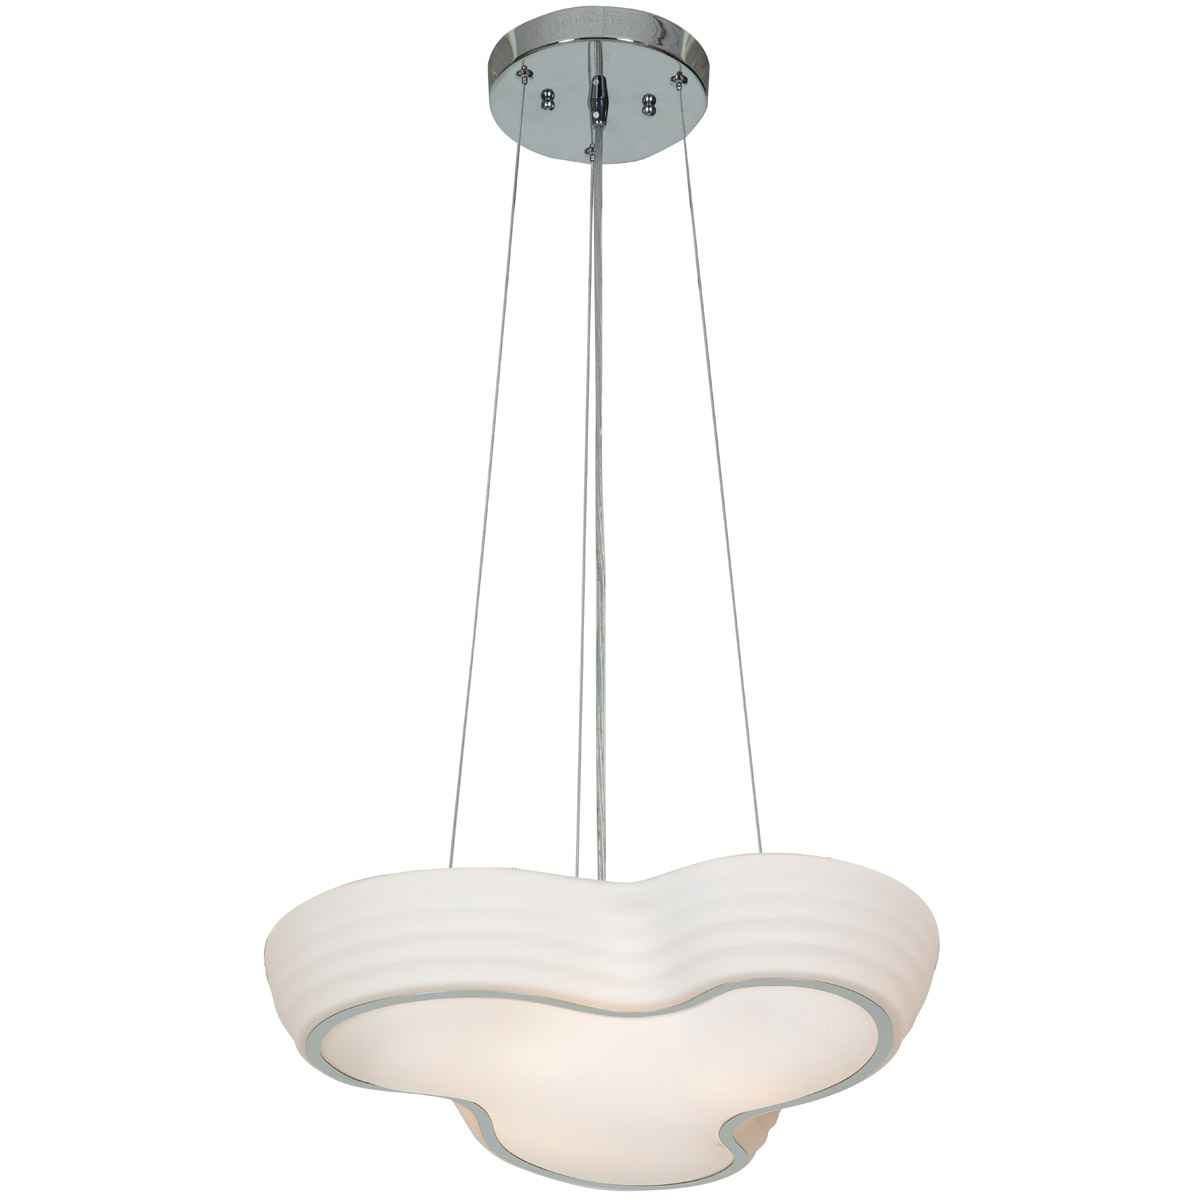 Access Lighting 20689LEDD-CH OPL Pebble LED 20 inch Chrome Flush Mount Ceiling Light by Access Lighting